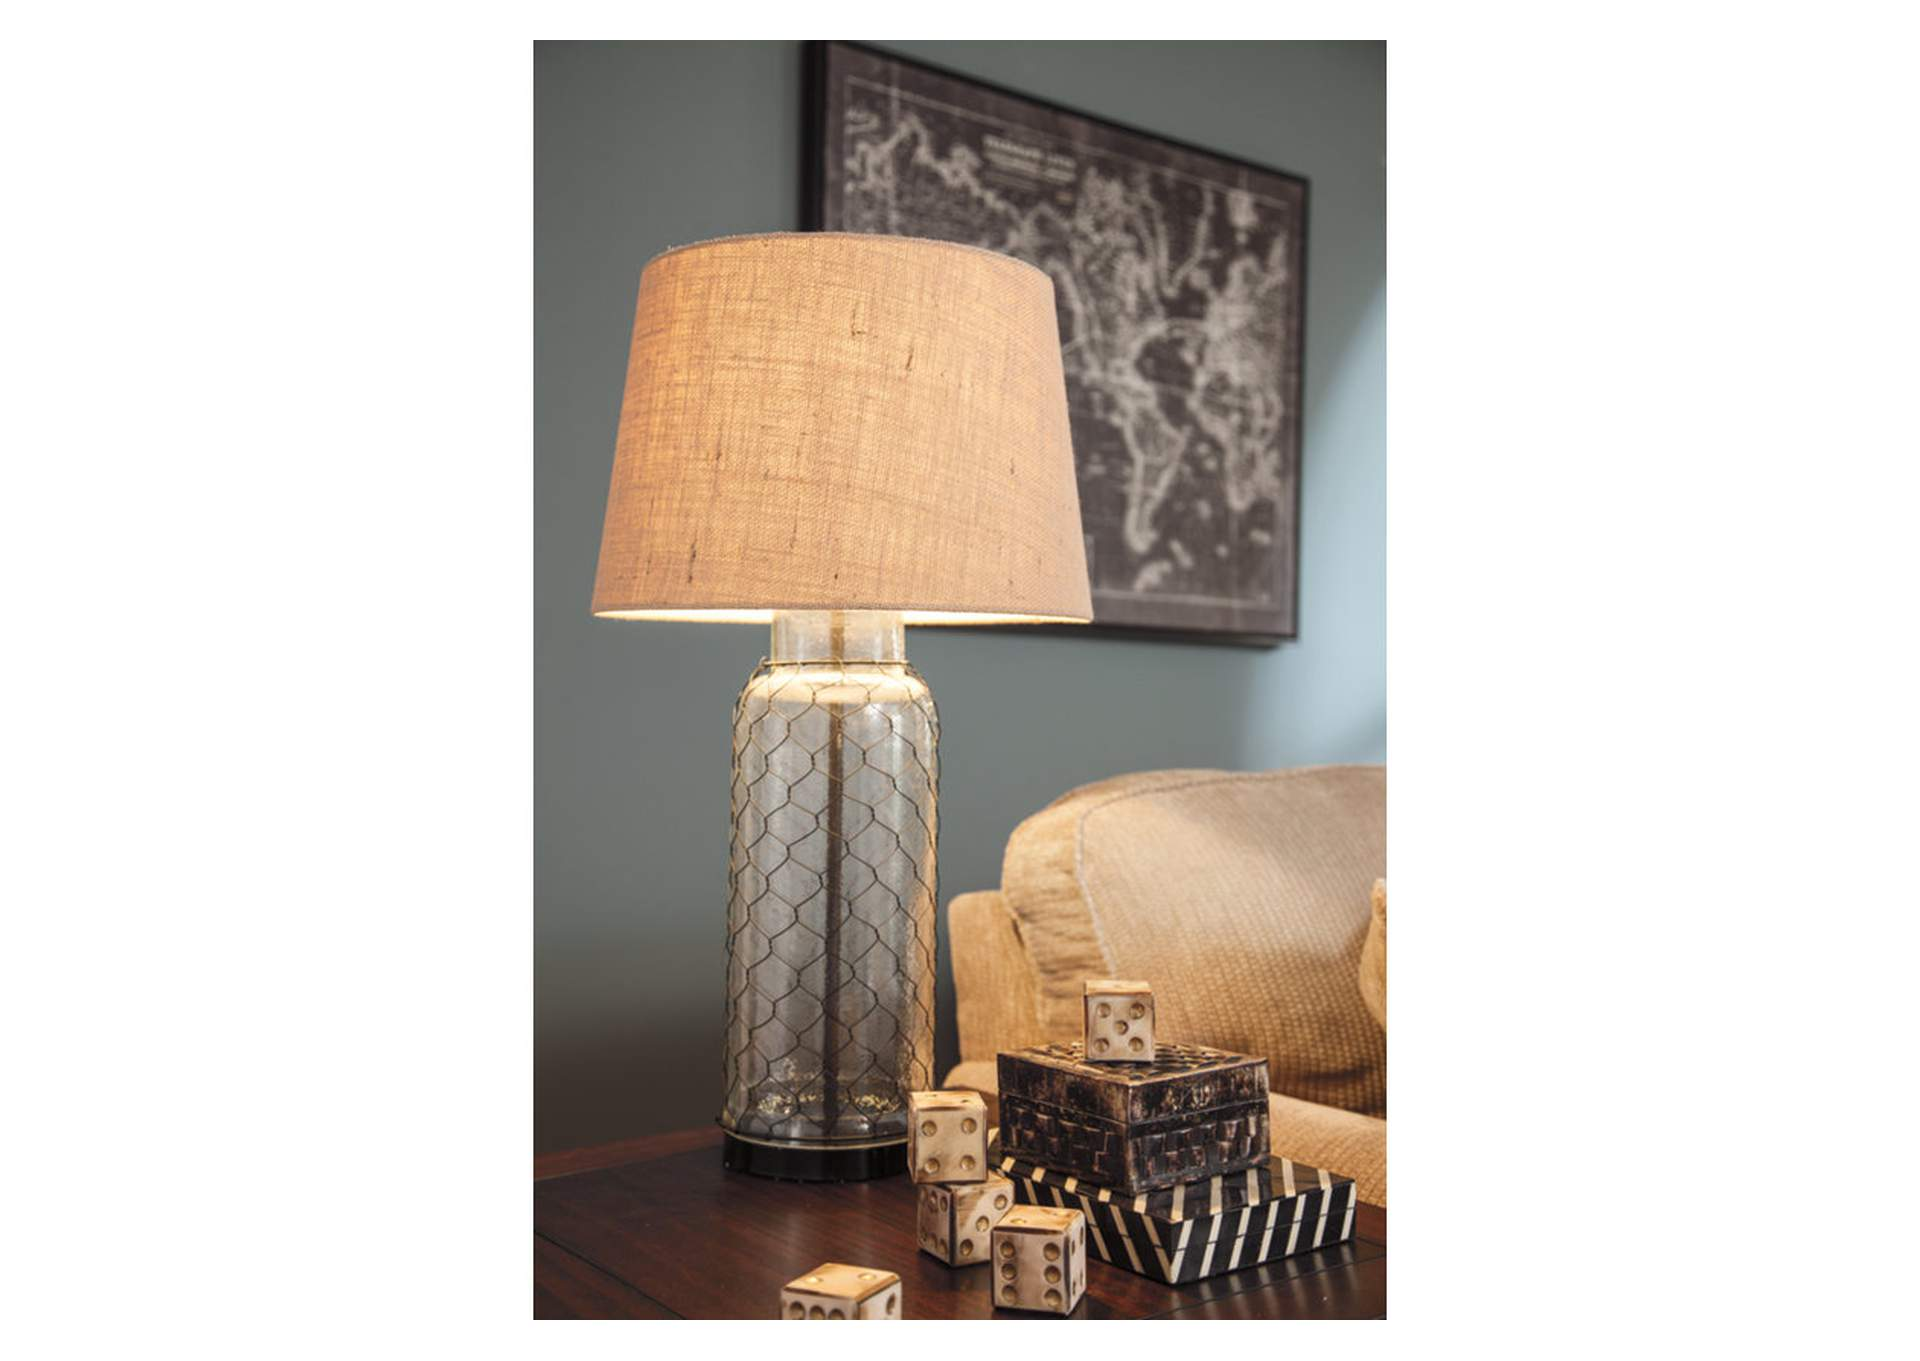 Transparent Glass Table Lamp,Direct To Consumer Express